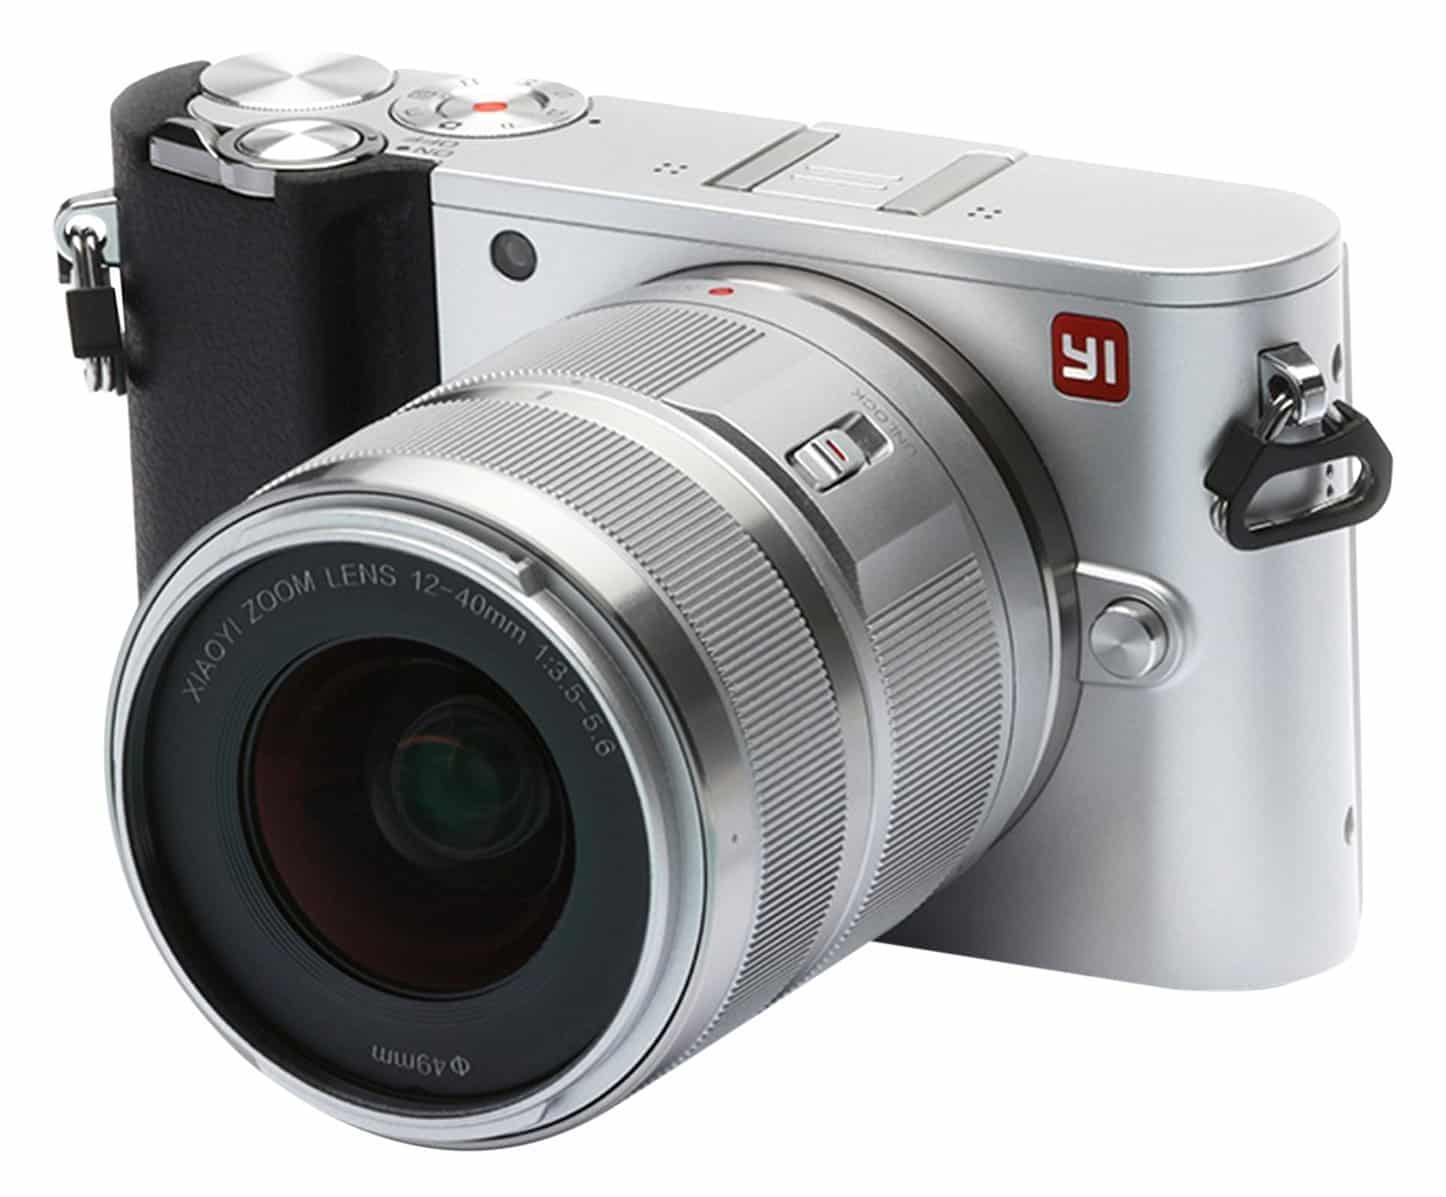 YI F3.5-5.6 Mirrorless Digital Camera